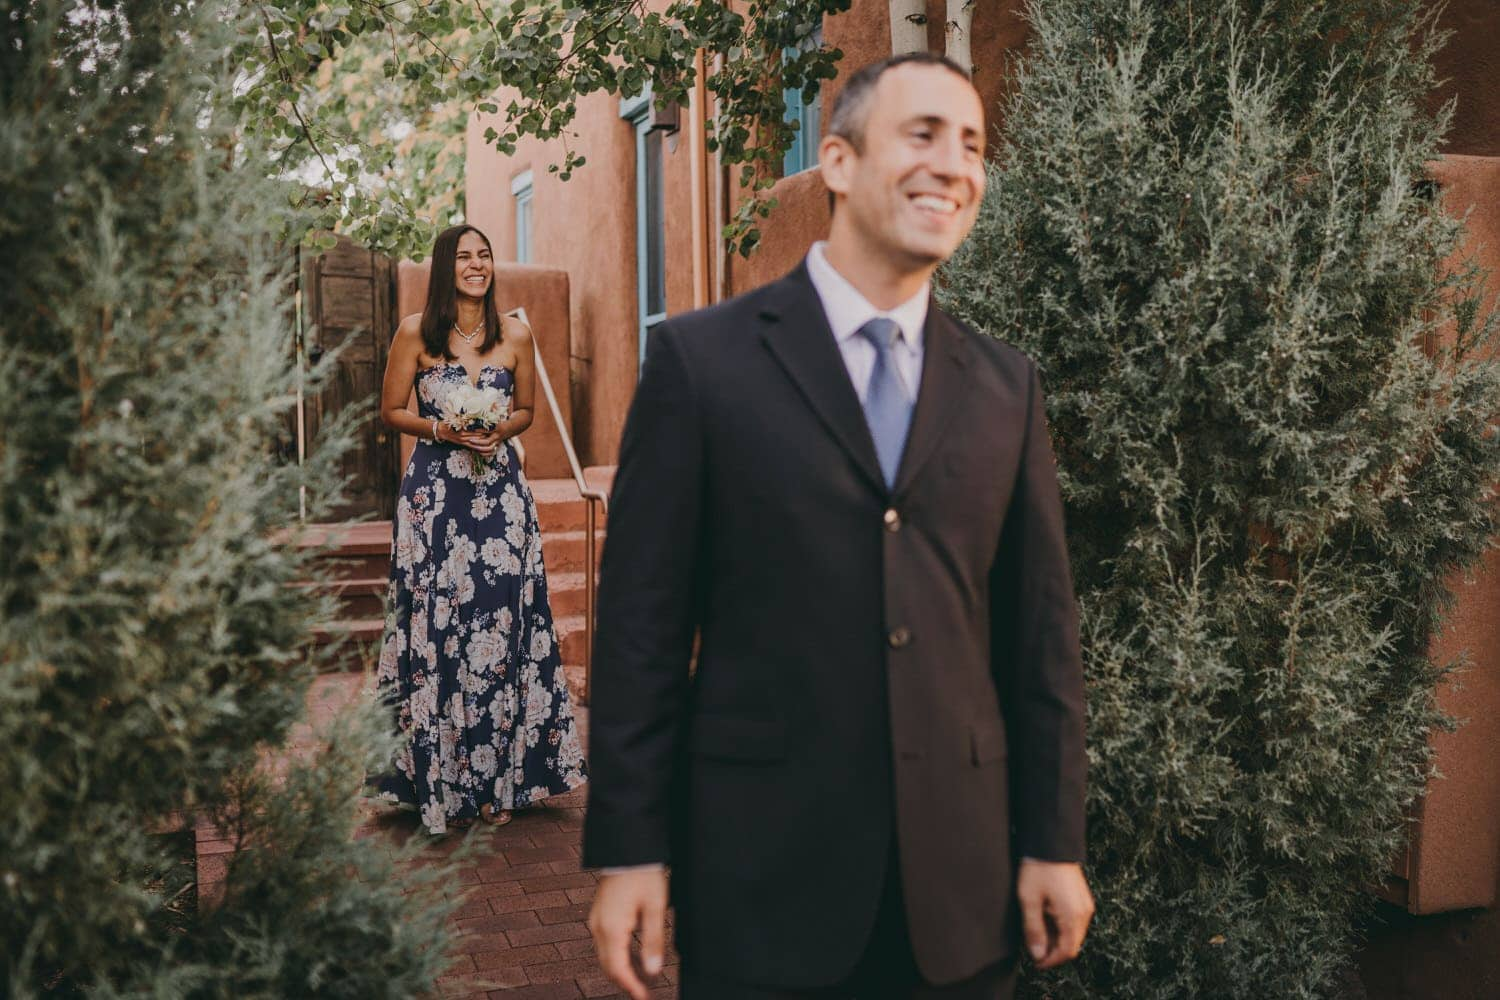 Bride laughing as she walks up behind her groom for their first look